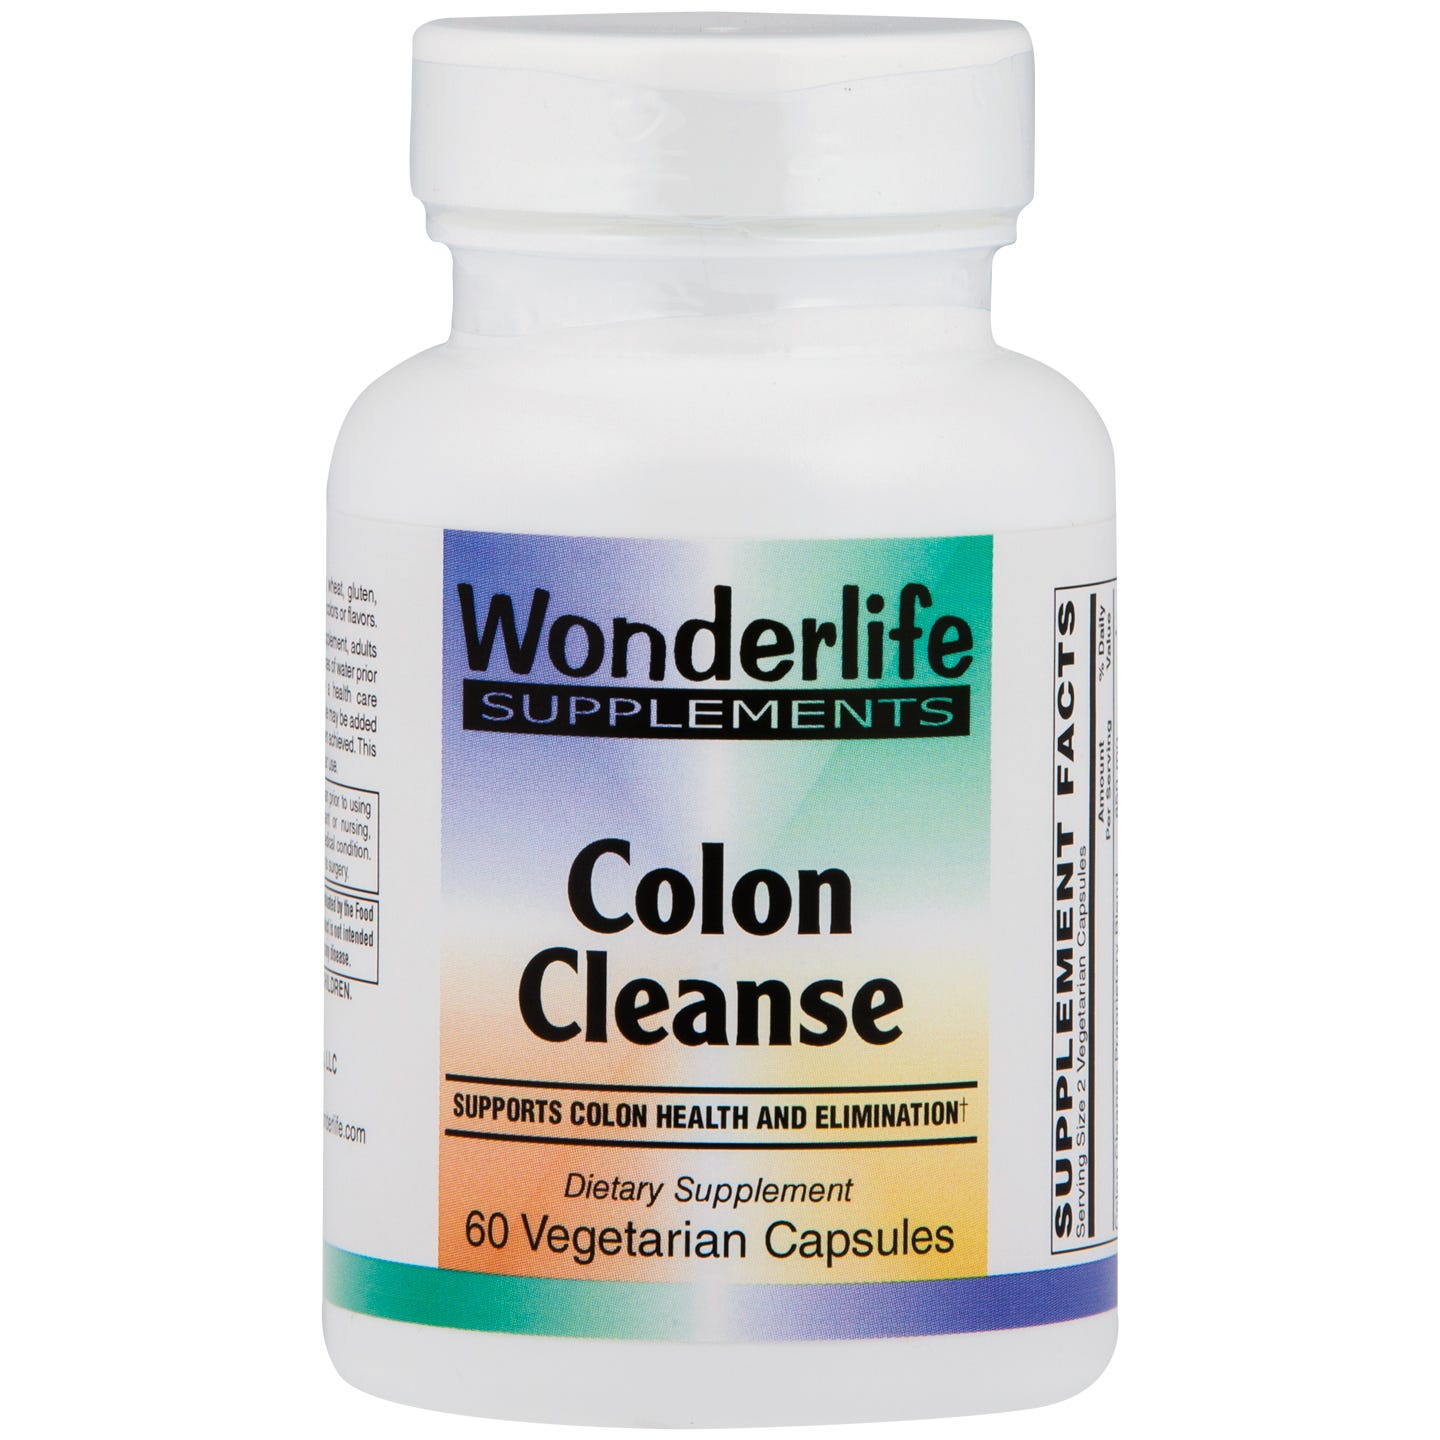 Colon Cleanse Vcaps (60 ct), Wonderlife - Rapid Diet Weight Loss Products Shop